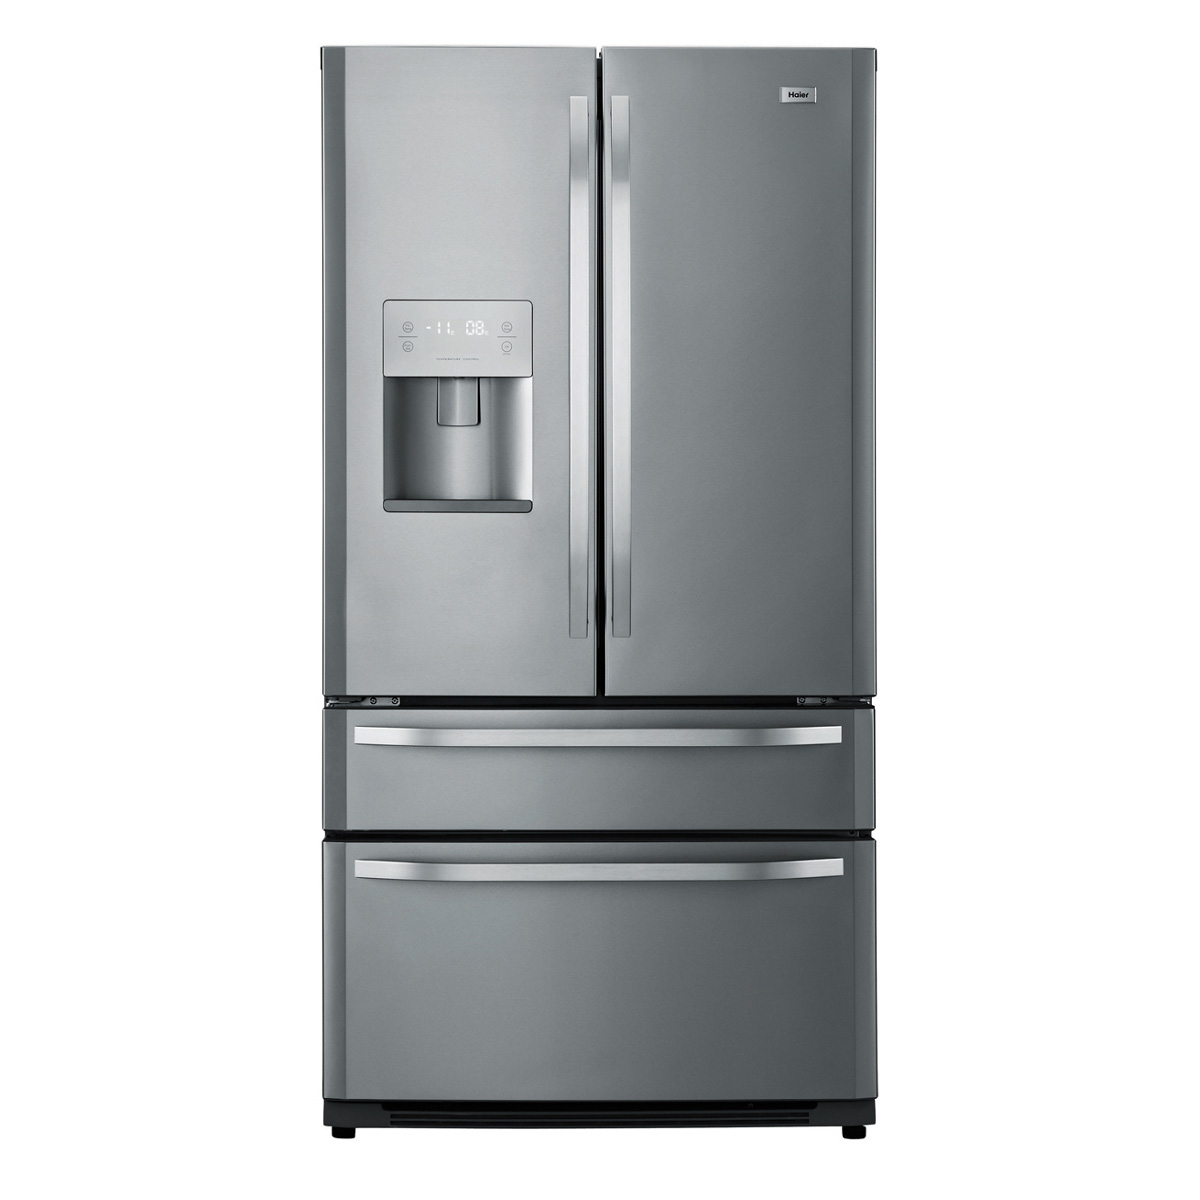 Haier HFD635WISS 633L French Door Fridge